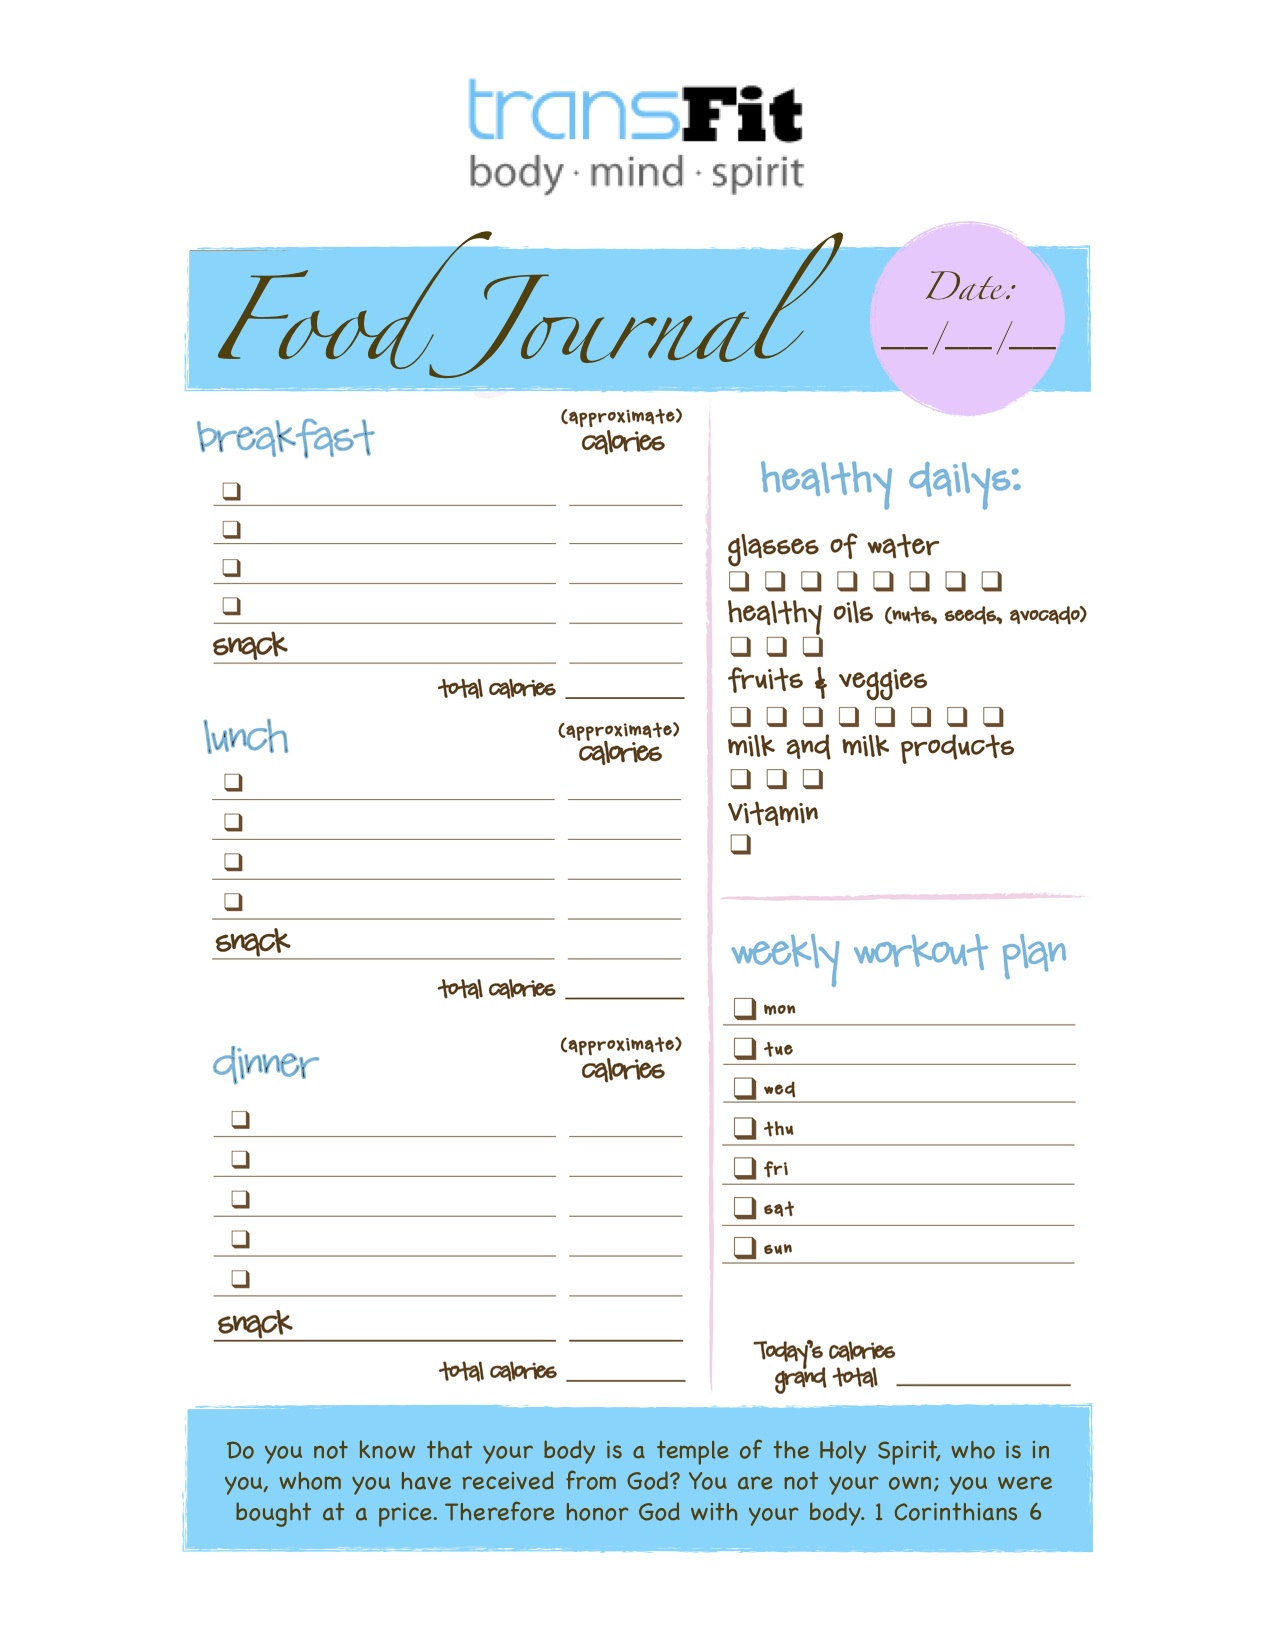 Finishing The Food Journal Challenge Strong Transfit